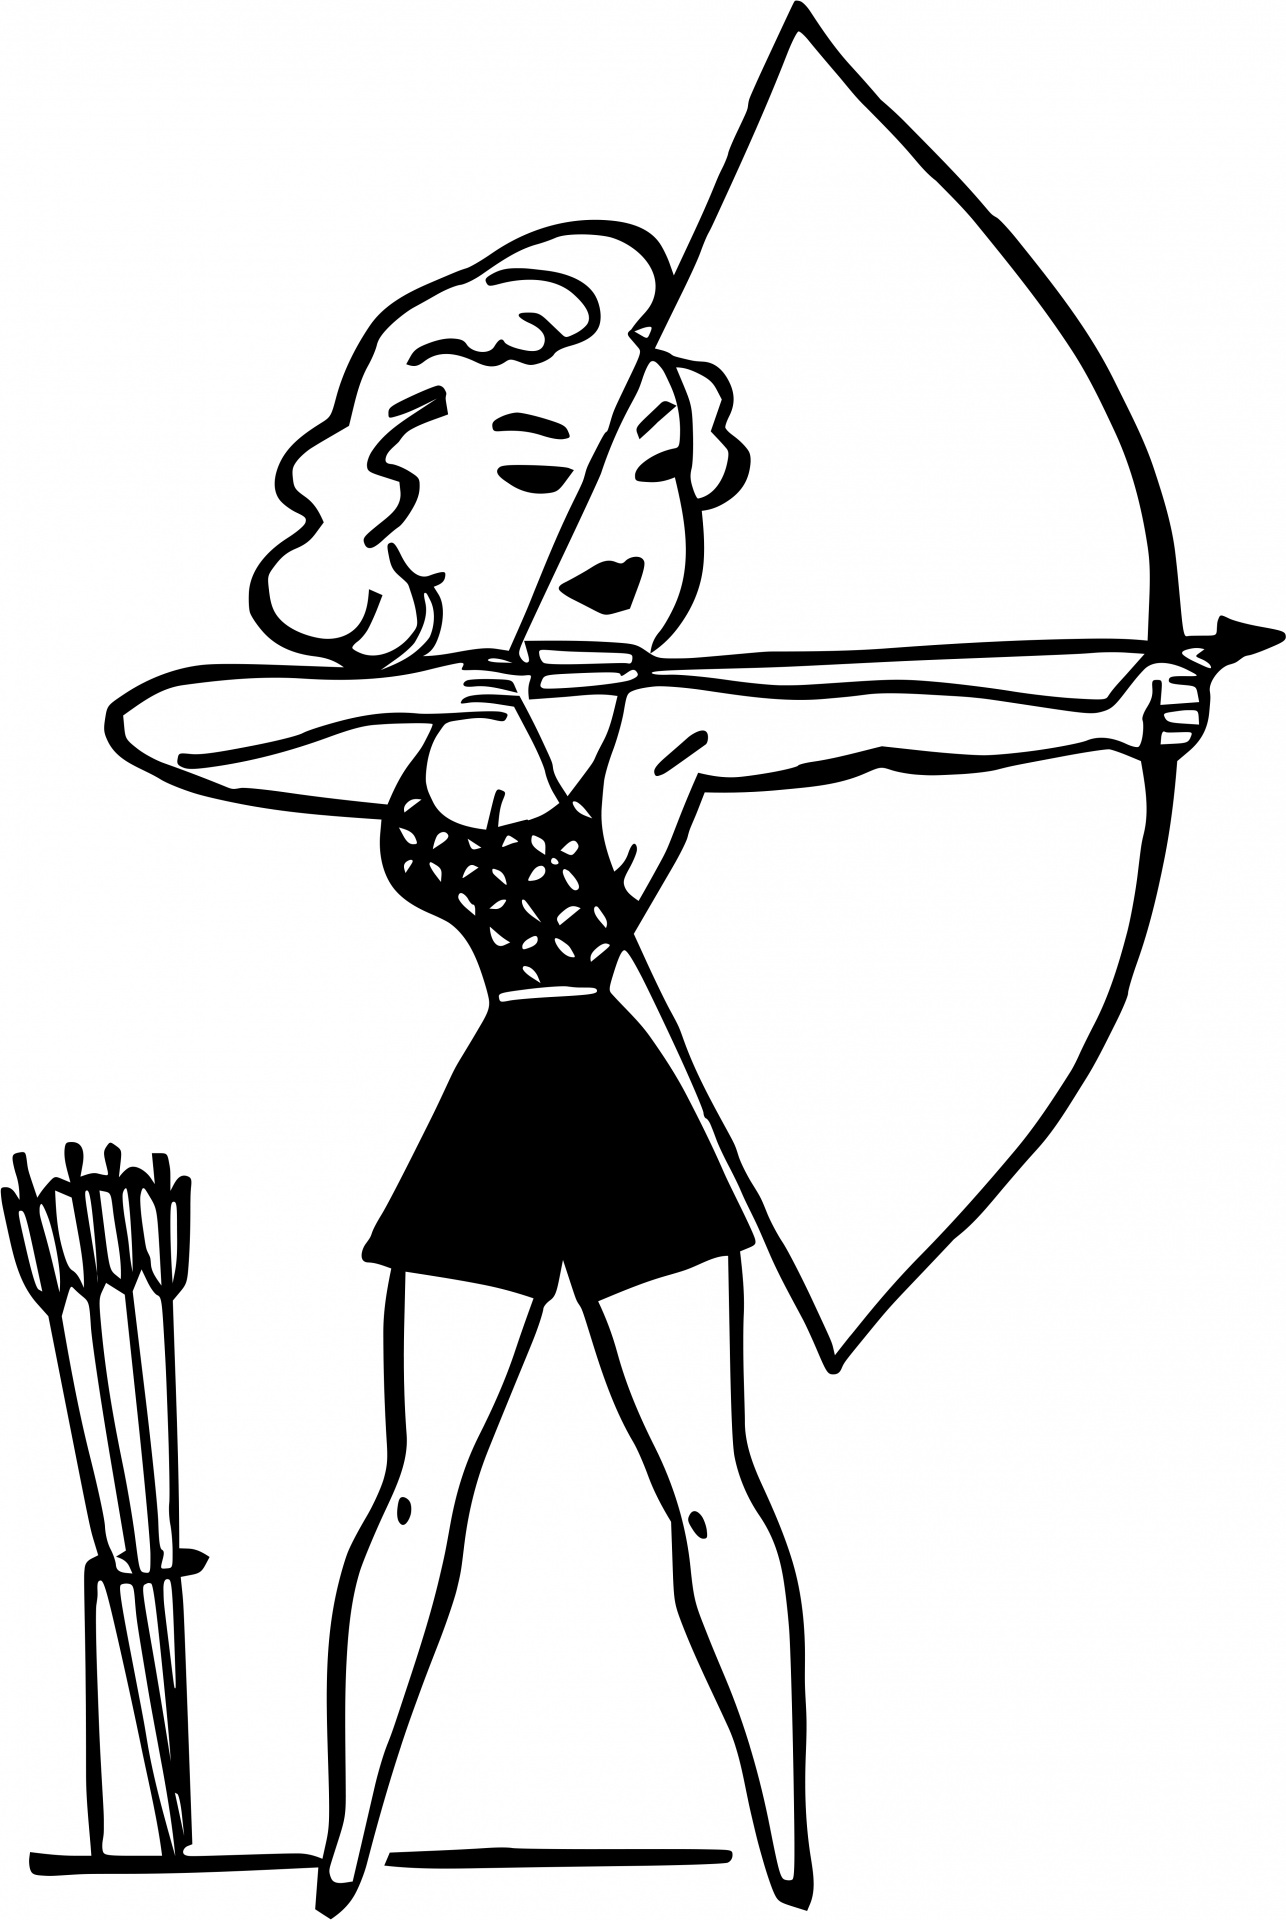 Archery Woman Free Stock Photo